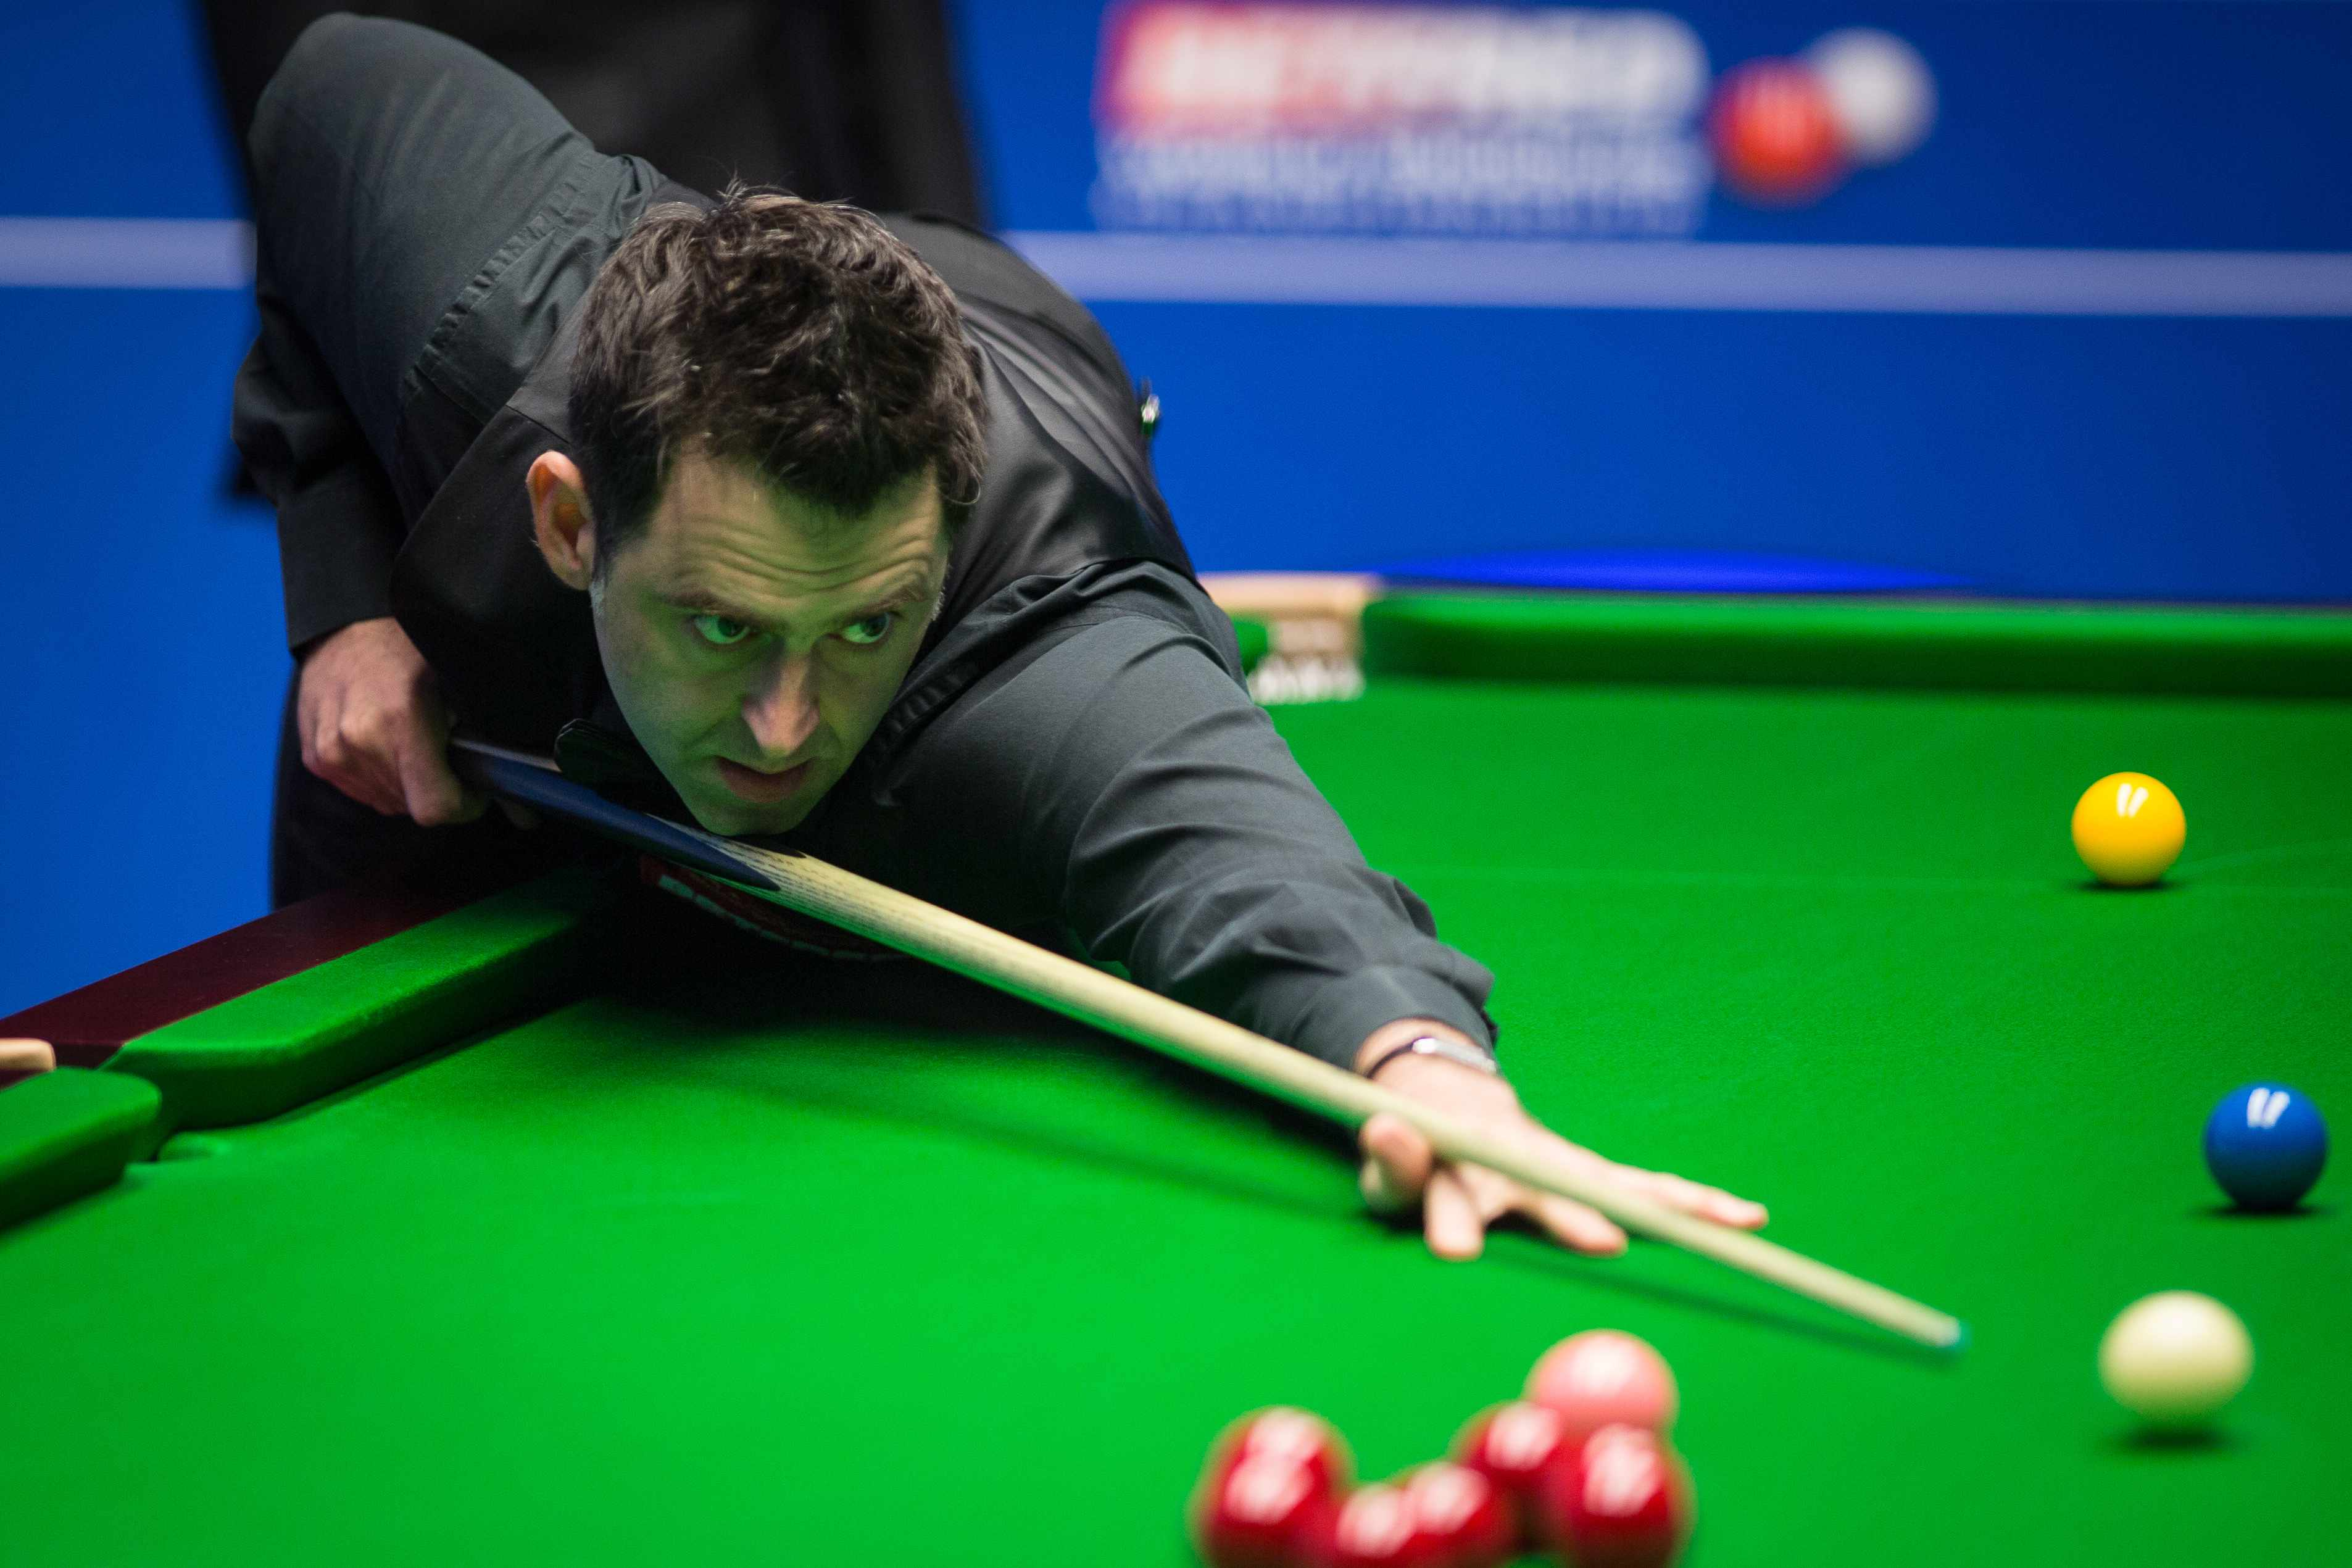 SHEFFIELD, ENGLAND - APRIL 22:  Ronnie O'Sullivan of England chalks the cue during his second round match against Shaun Murphy of England on day eight of Betfred World Championship 2017 at Crucible Theatre on April 22, 2017 in Sheffield, England.  (Photo by VCG/VCG via Getty Images)  Getty, TL